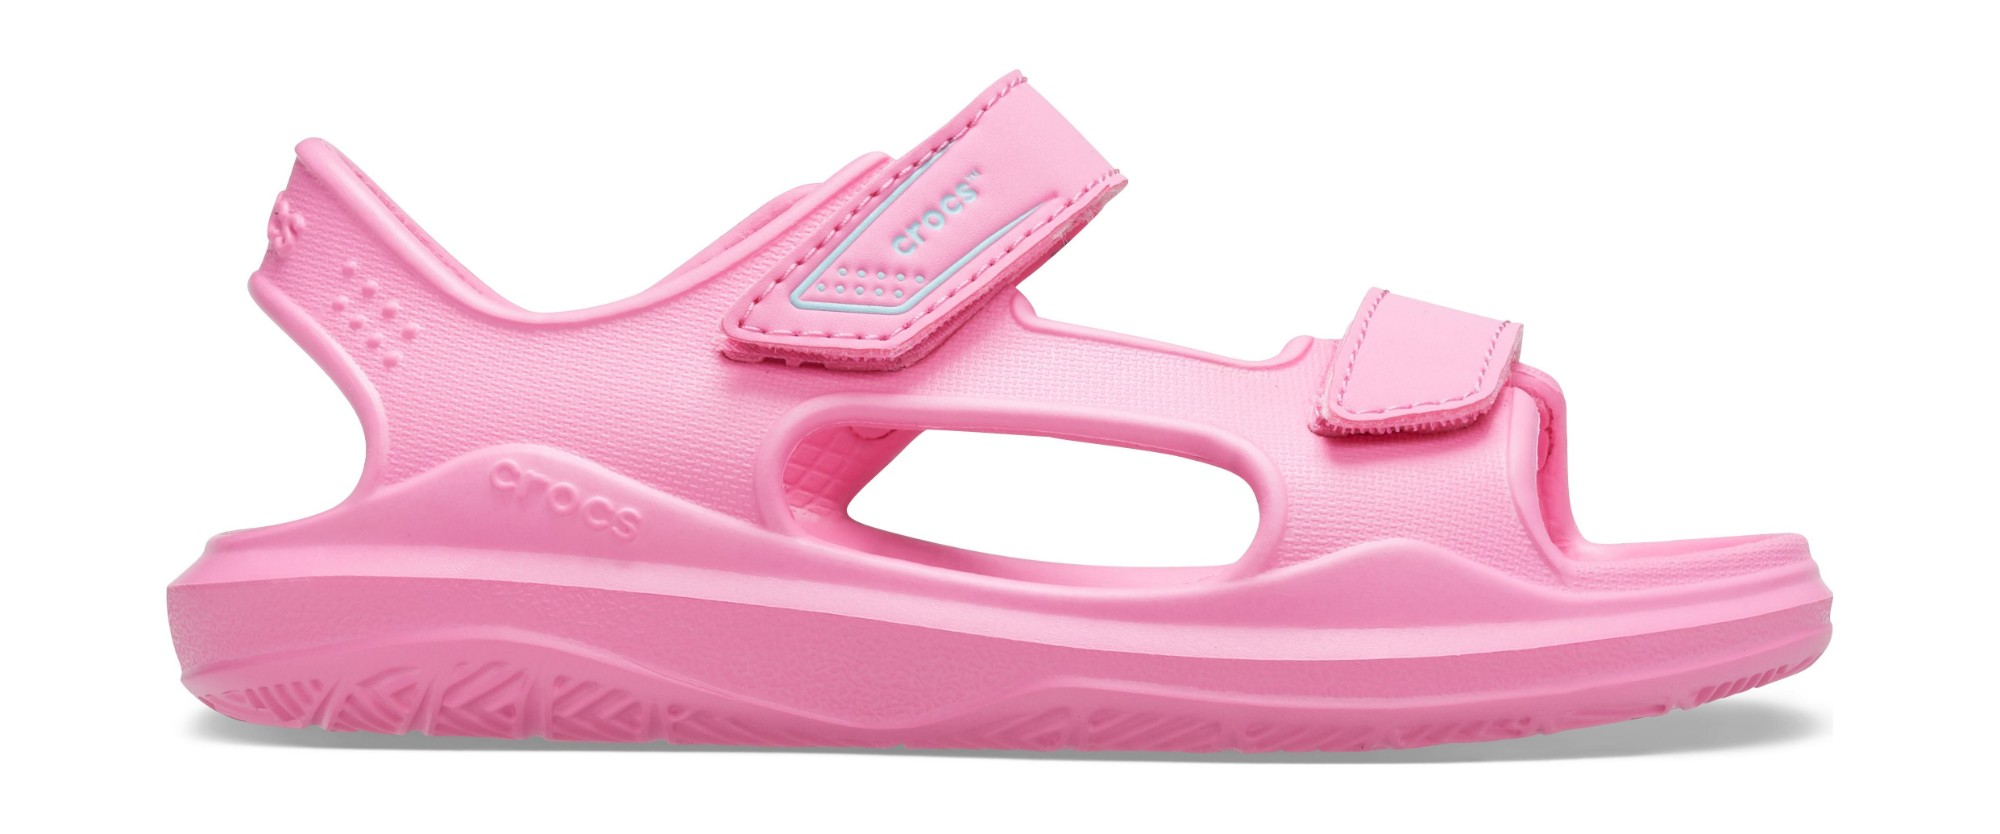 Crocs™ Swiftwater Expedition Sandal Kids Pink Lemonade/Pink Lemonade 32